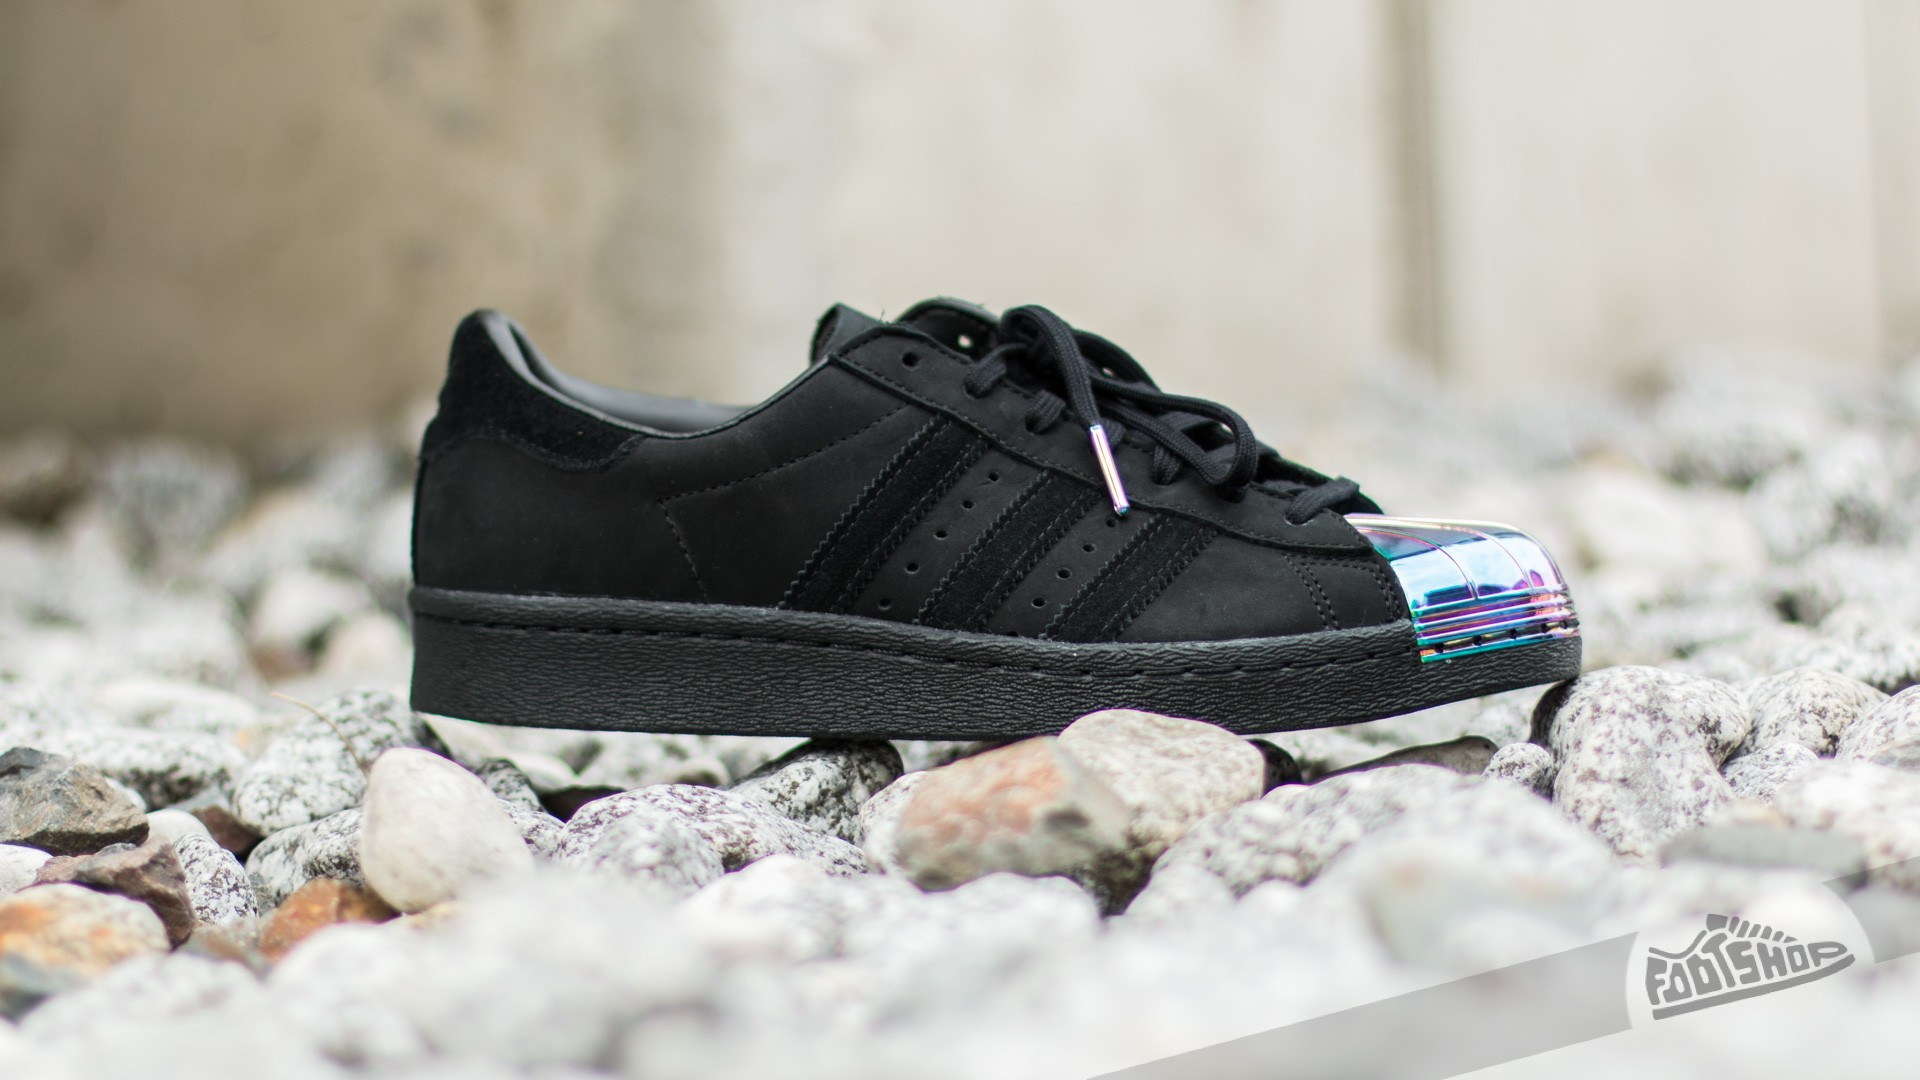 9411c82c48bf adidas Superstar 80 s Metal Toe W Core Black  Core Black  Ftw White ...